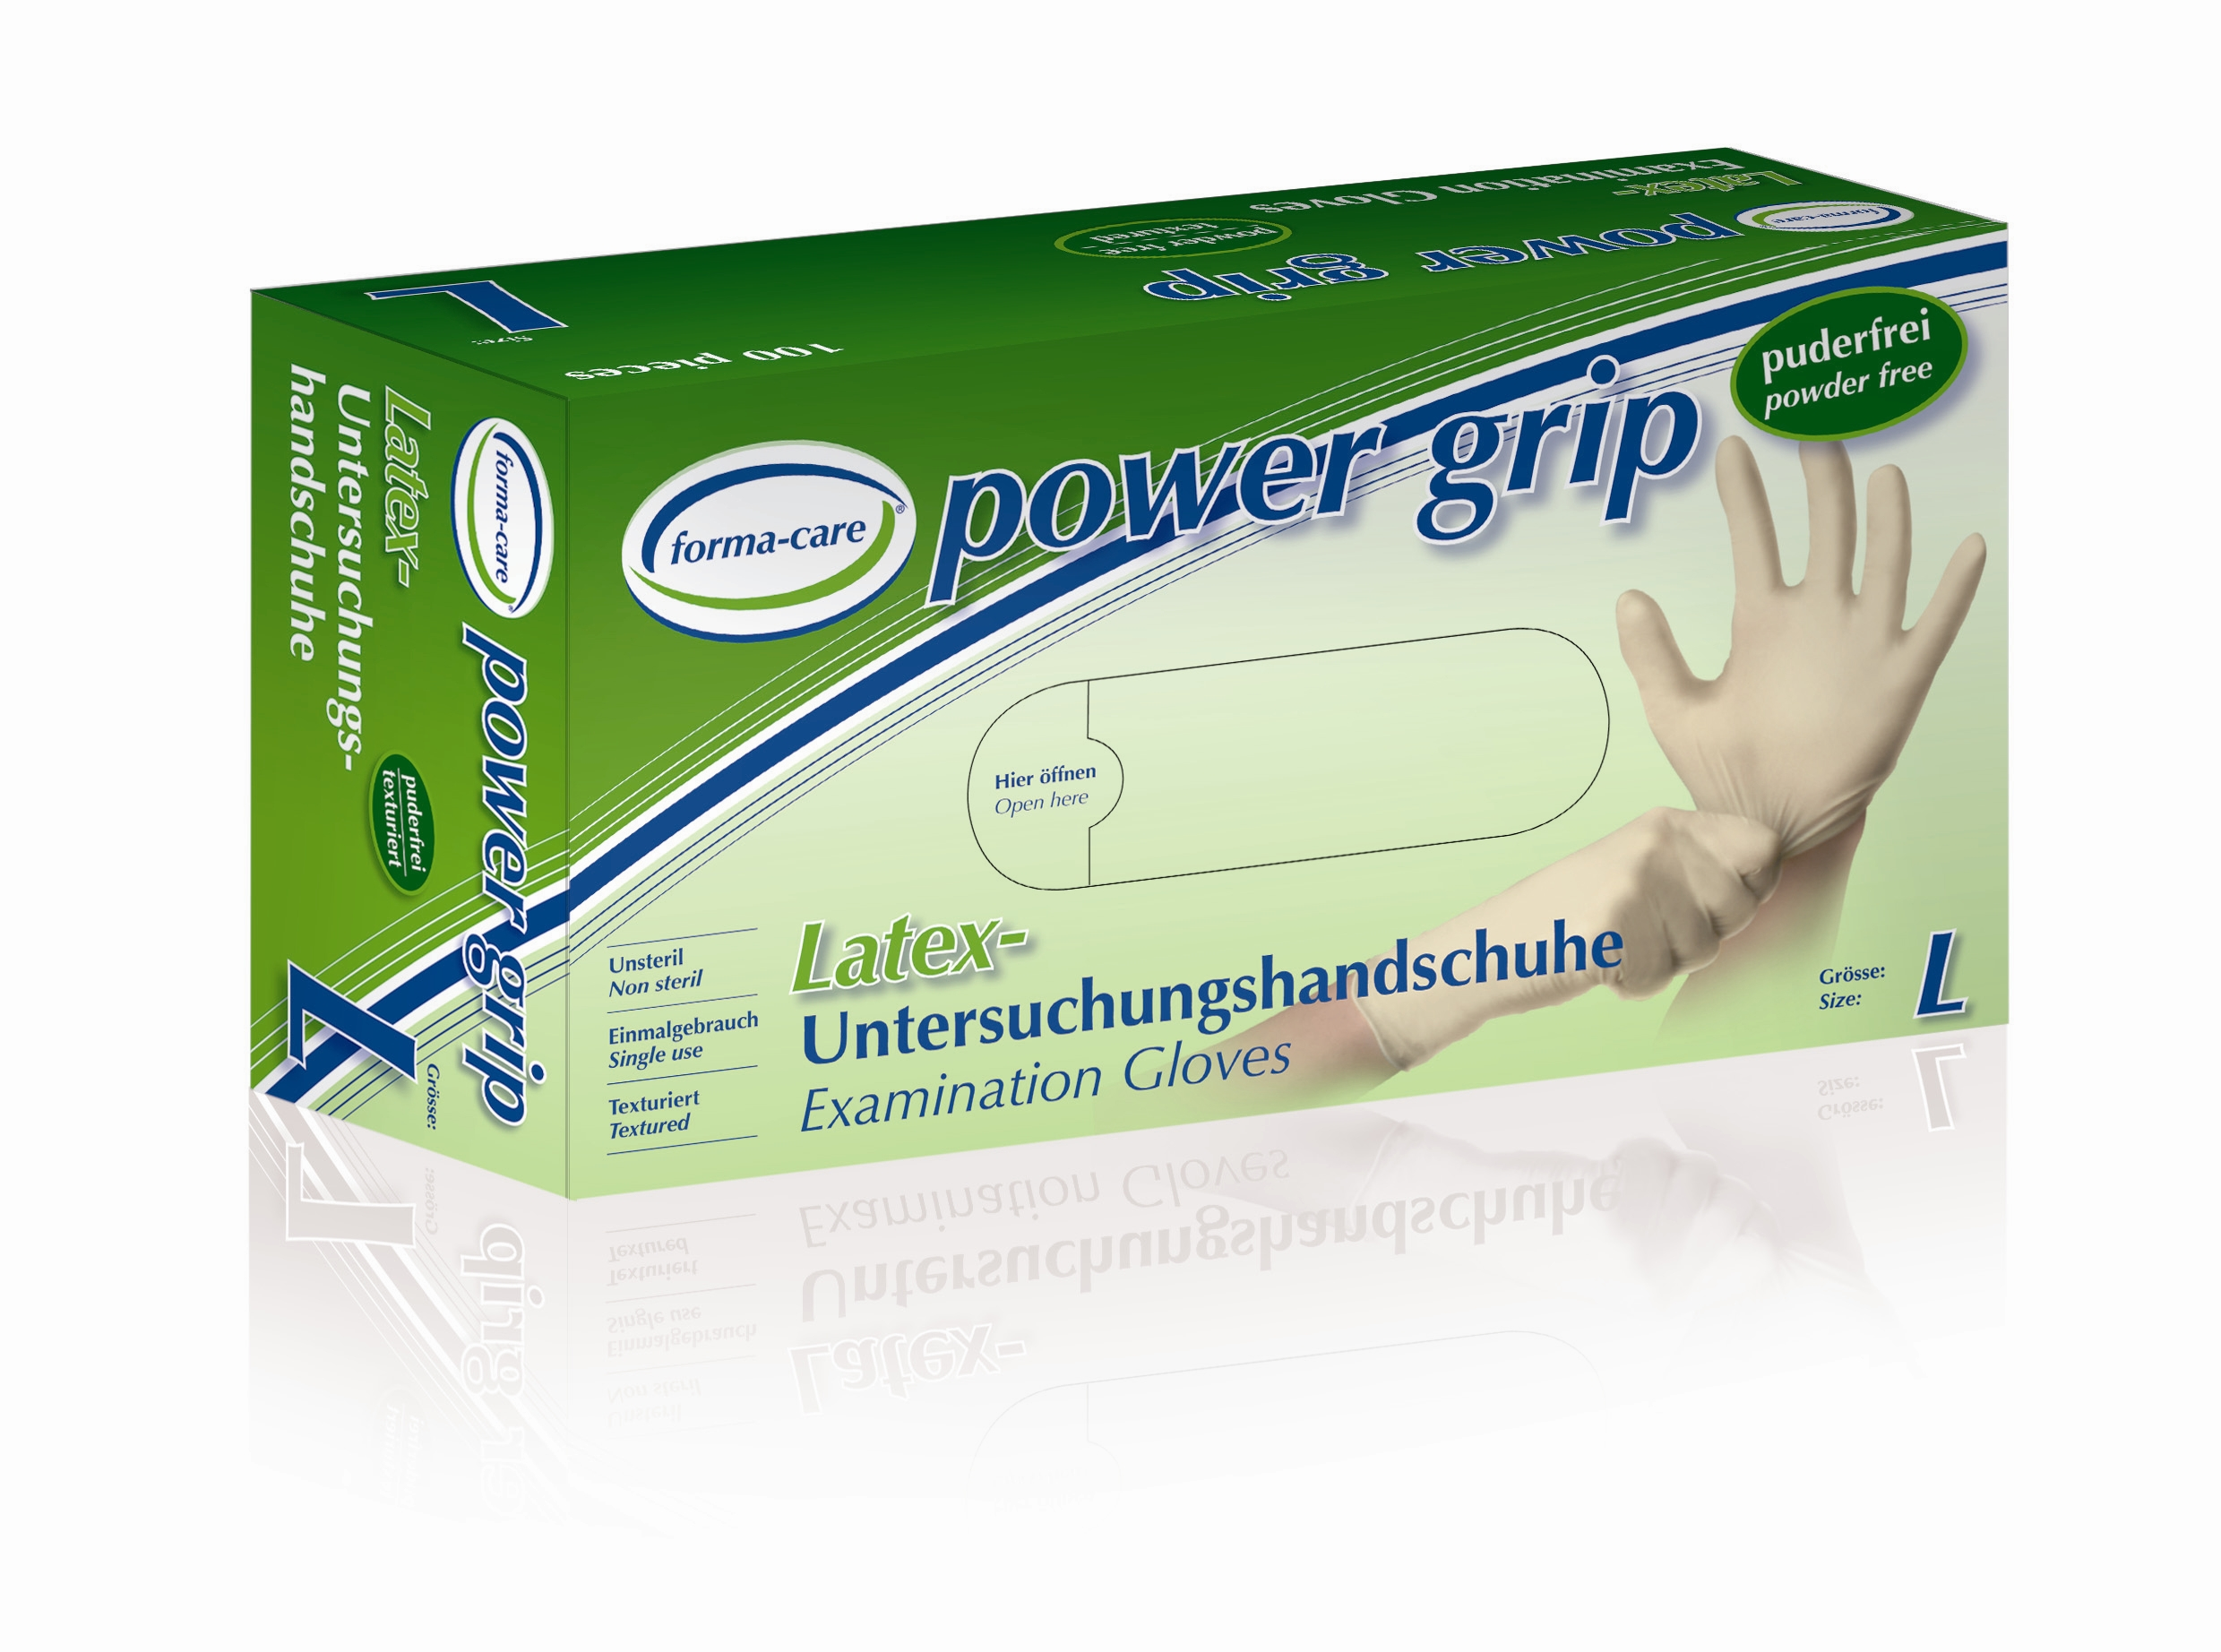 forma-care Handschuh Latex power grip L, 10 x 100 Stück, puderfrei, weiß, Gr. L